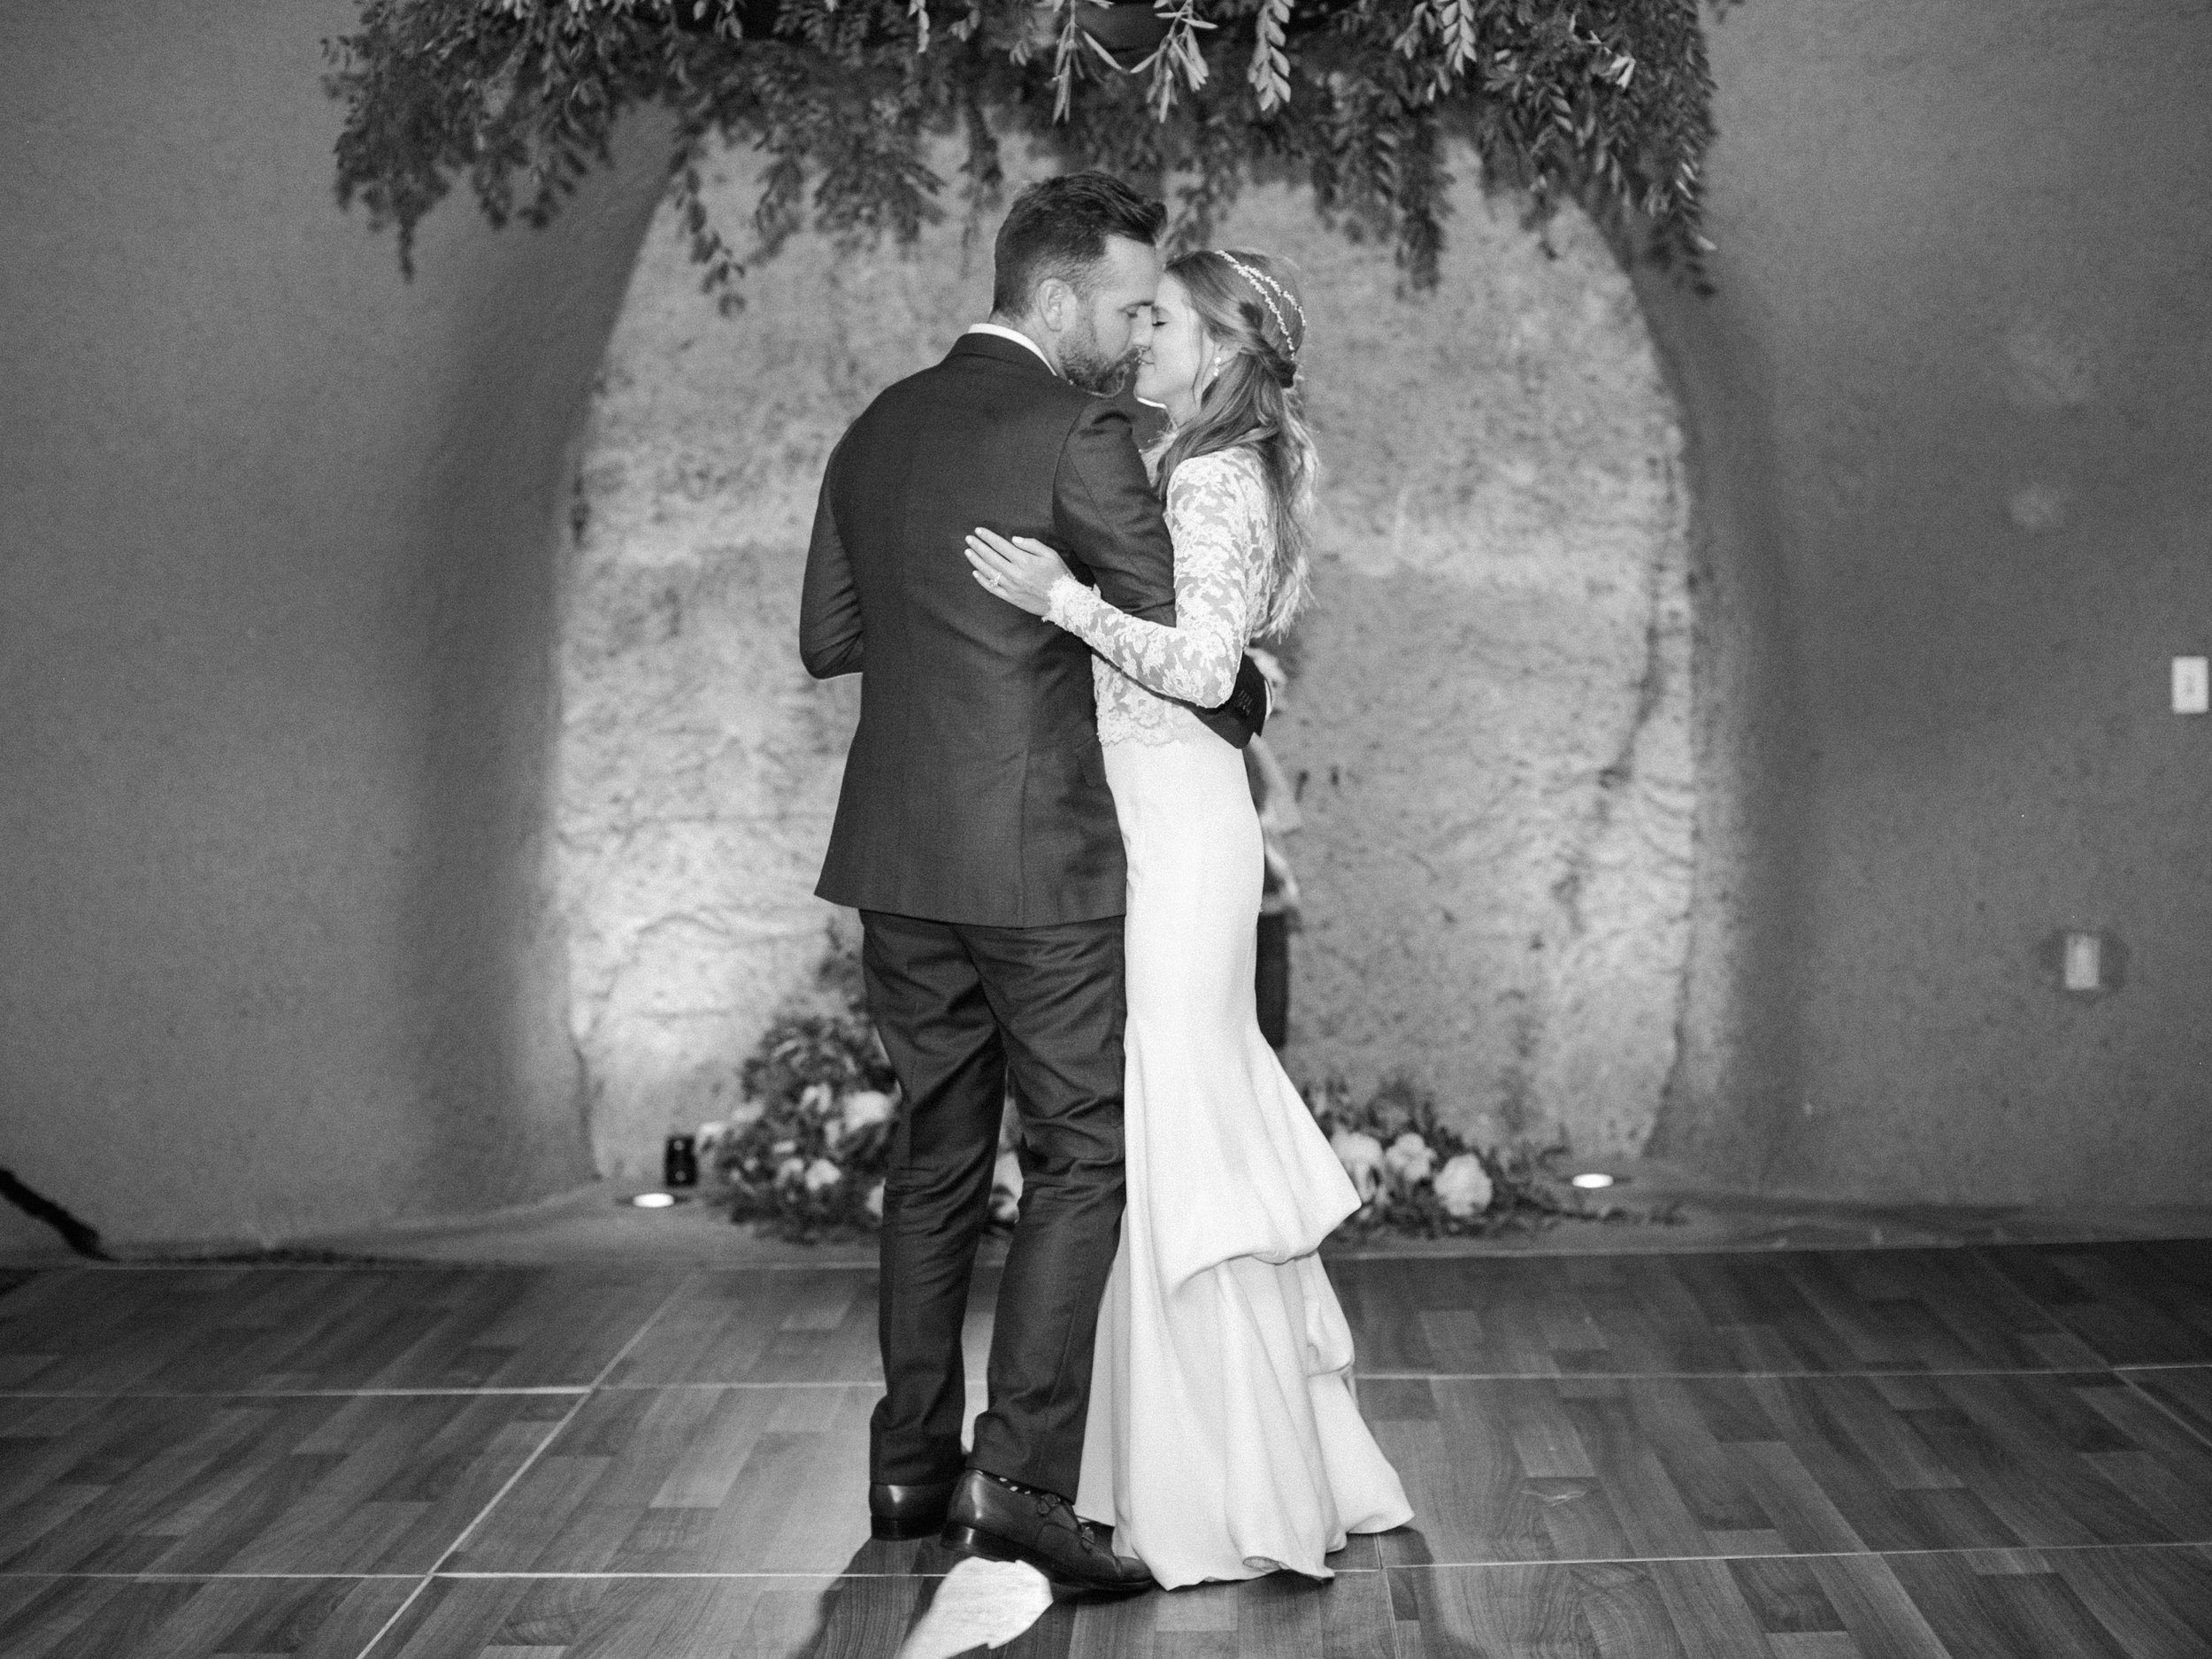 Napa Wedding Photographer - Meghan Mehan Photography _048.jpg